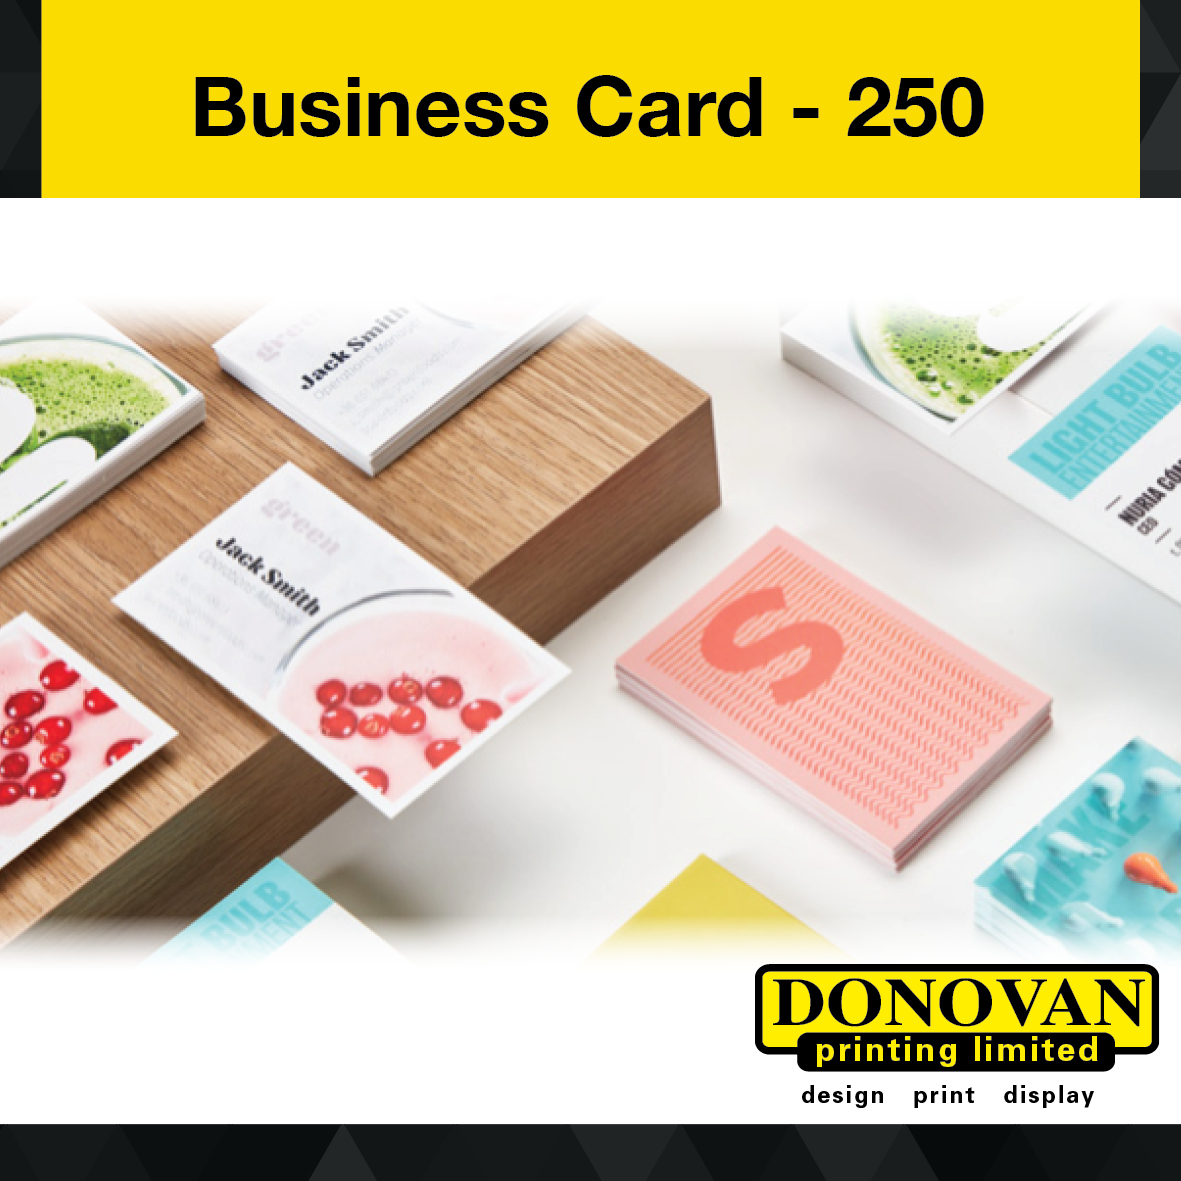 Business Cards 250 Image